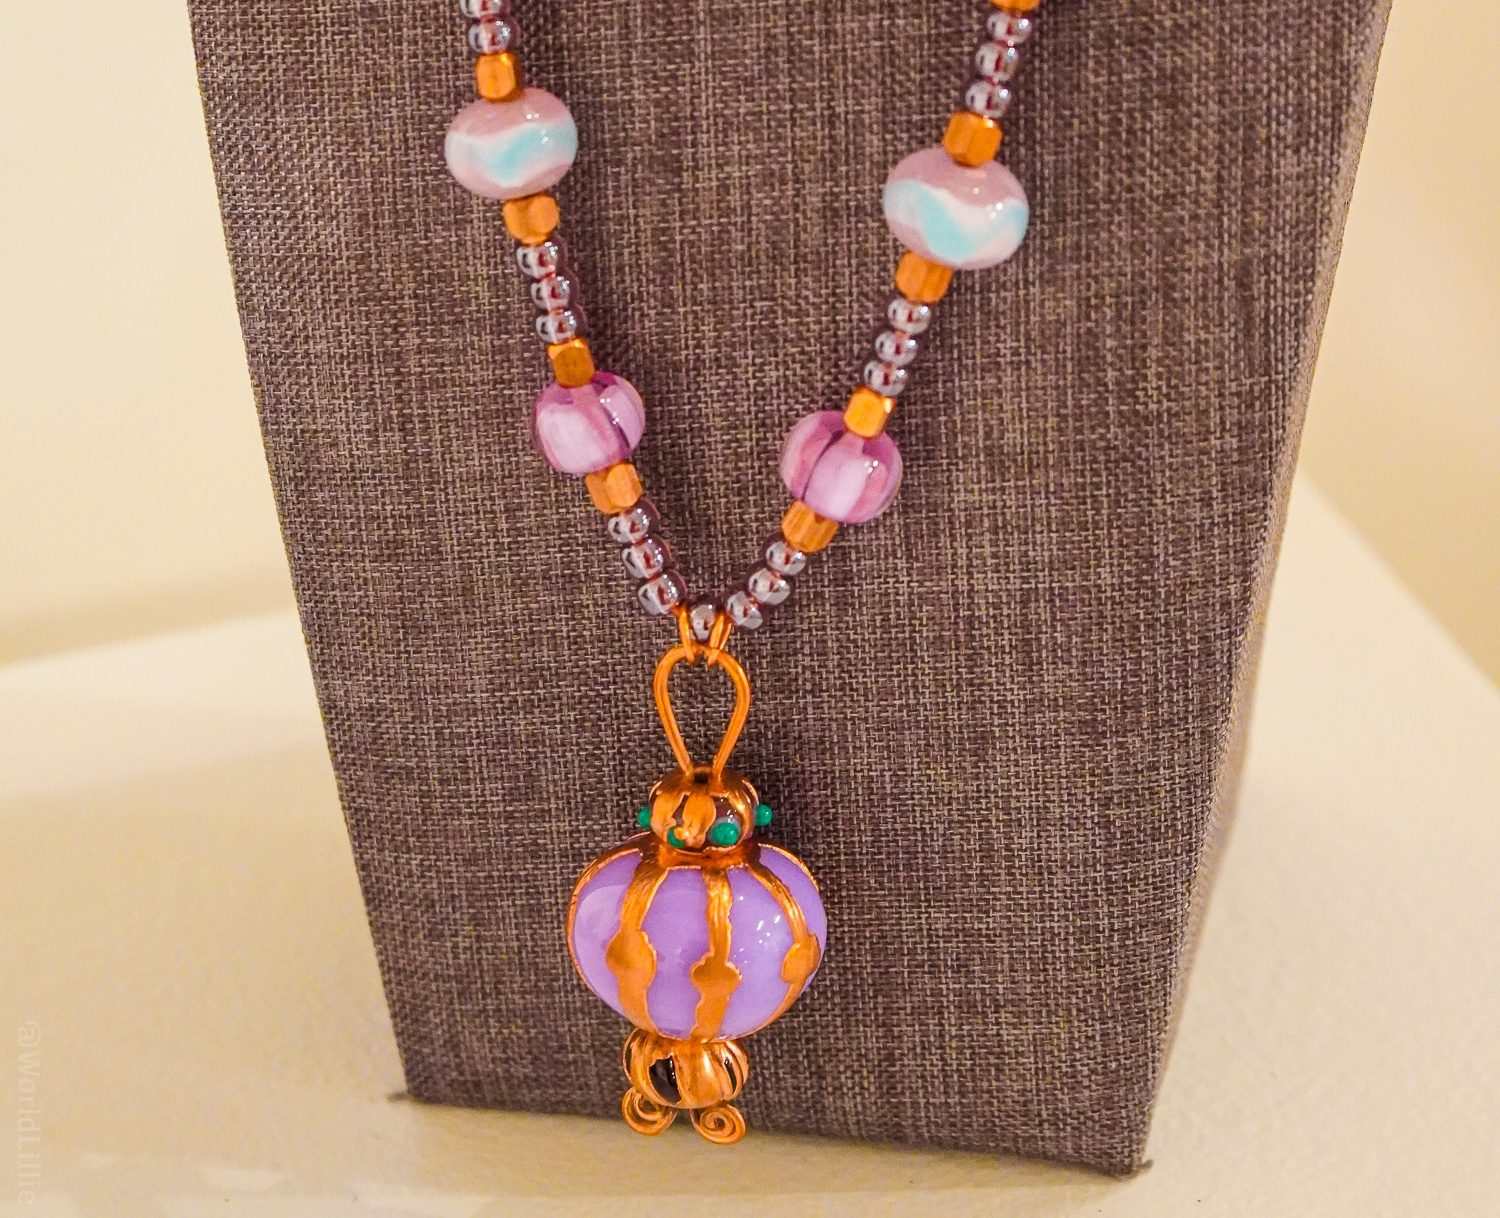 One of Joy's completed glass bead necklaces.